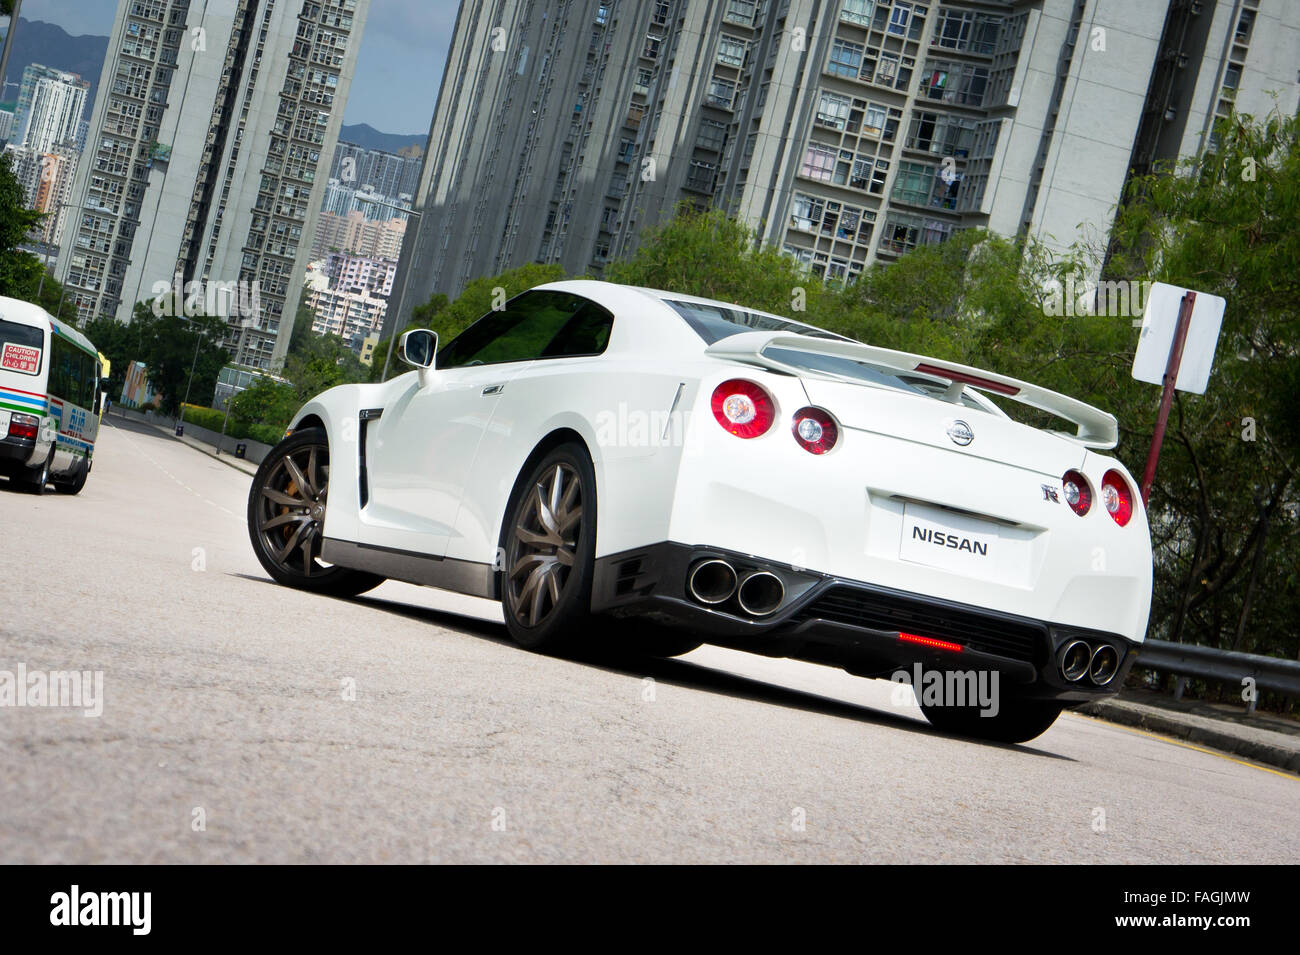 Good Hong Kong, China SEPT 15, 2011 : Nissan GT R Super Car Test